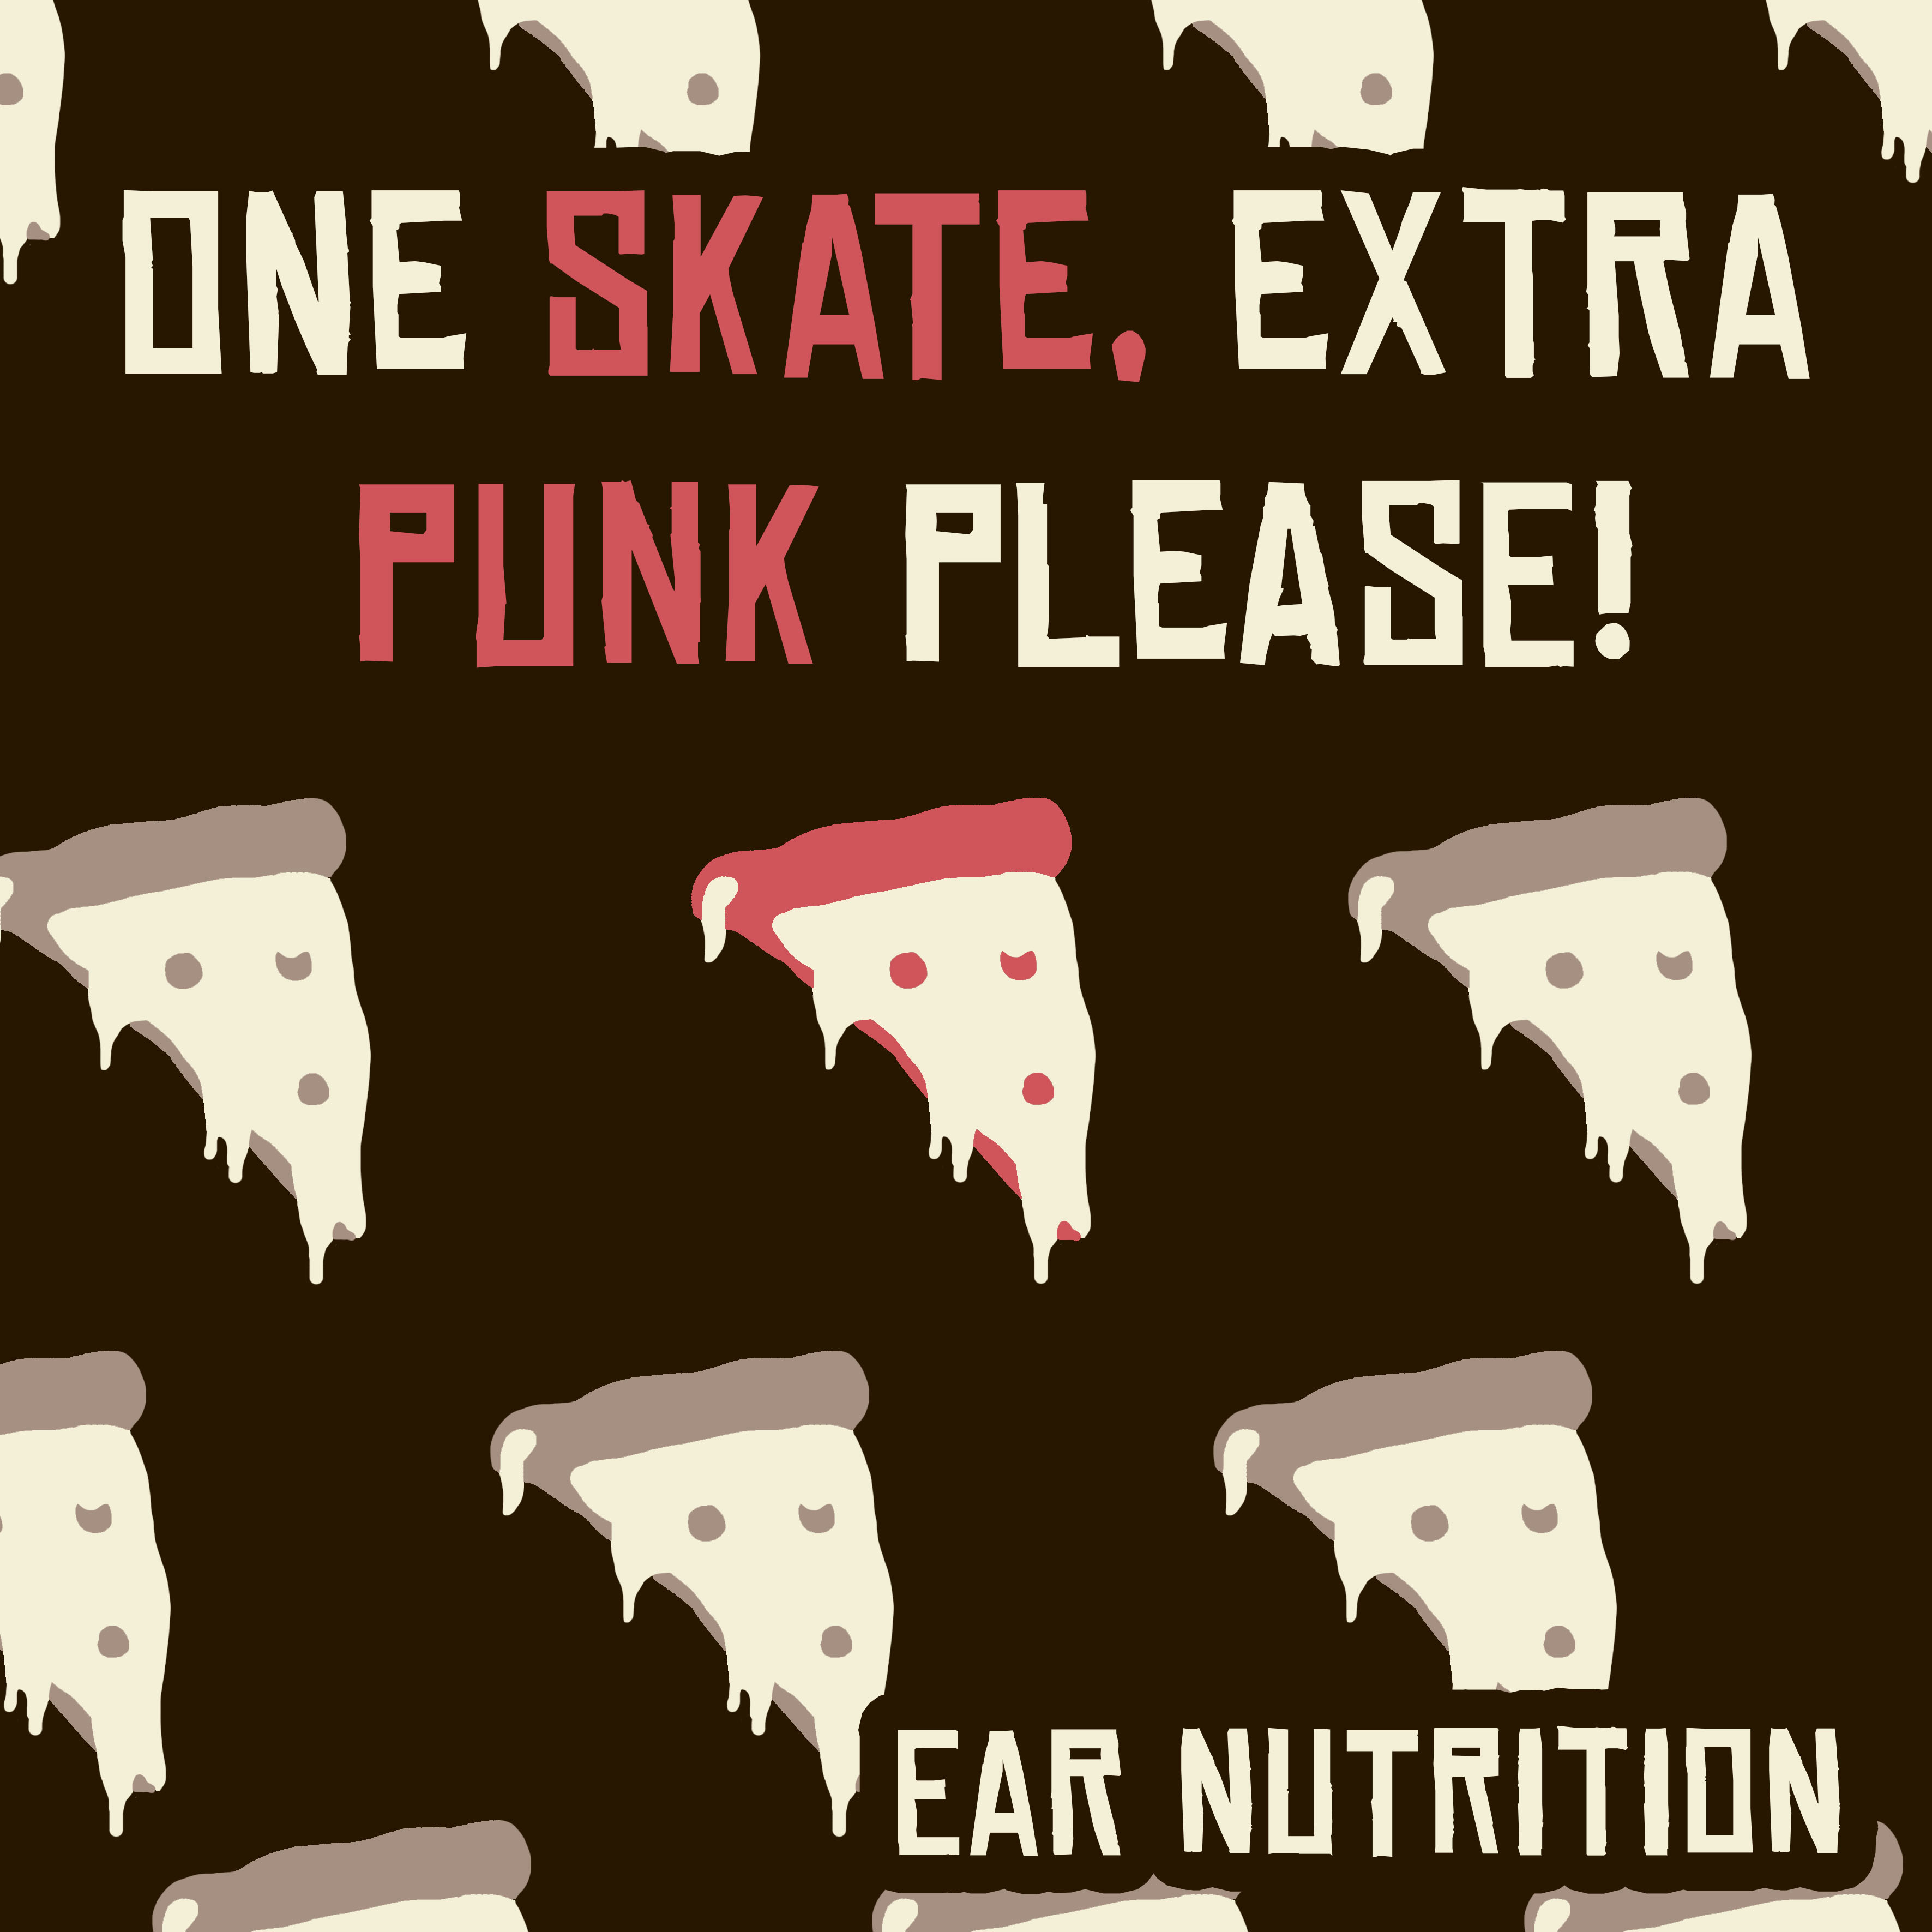 One Skate, Extra Punk Please!